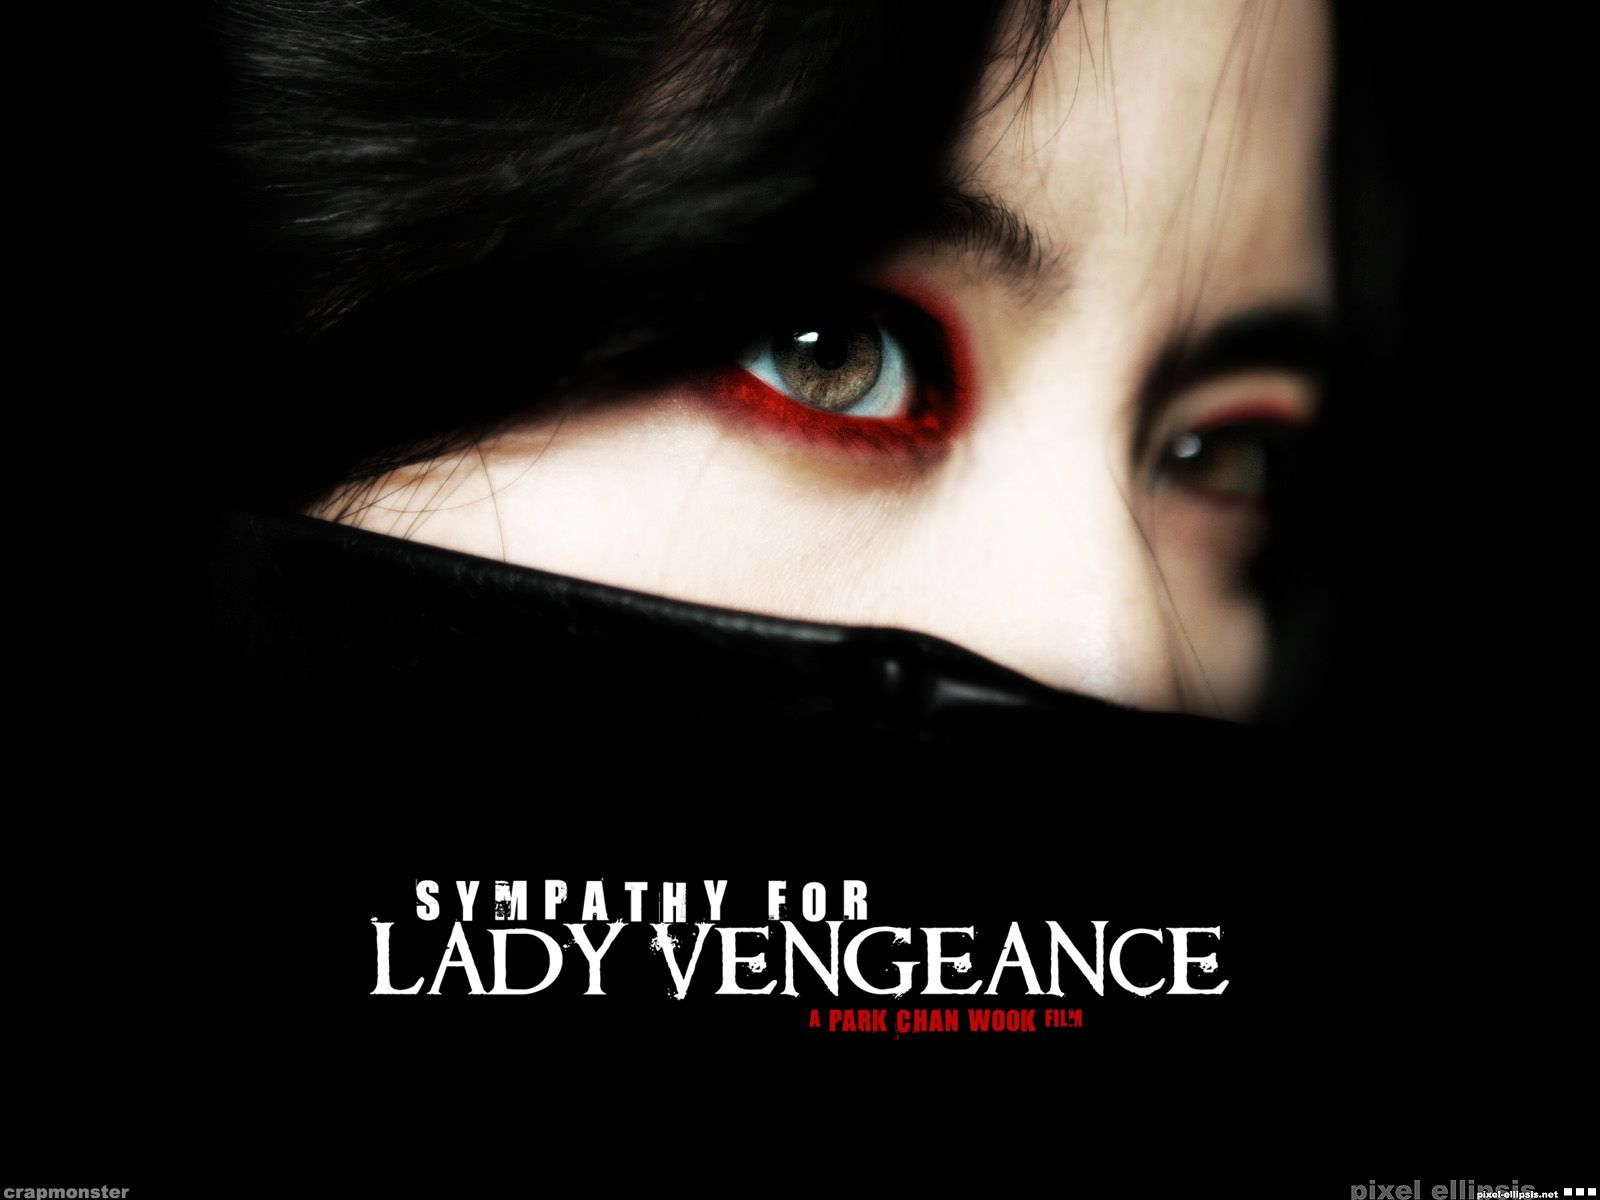 Sympathy for Lady Vengeance. Fuente: Tomatazos.com